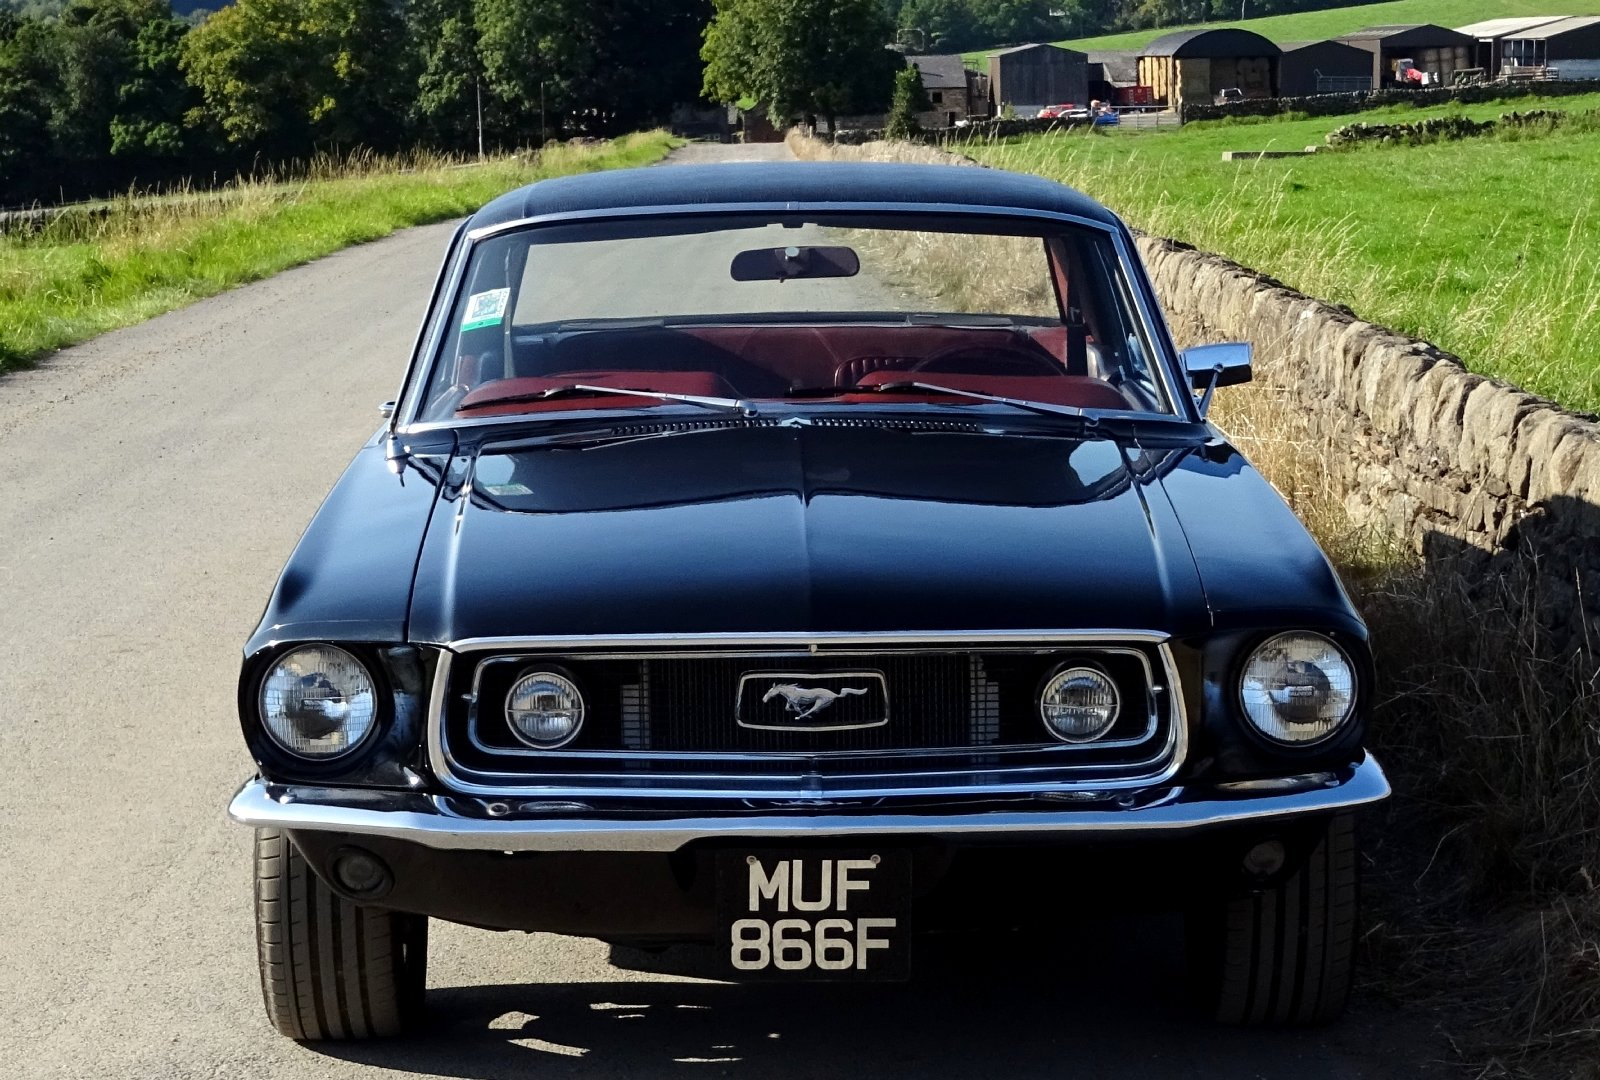 1968 AWESOME FORD MUSTANG AMERICAN V8 CLASSIC MUSCLE CAR For Sale (picture 3 of 12)